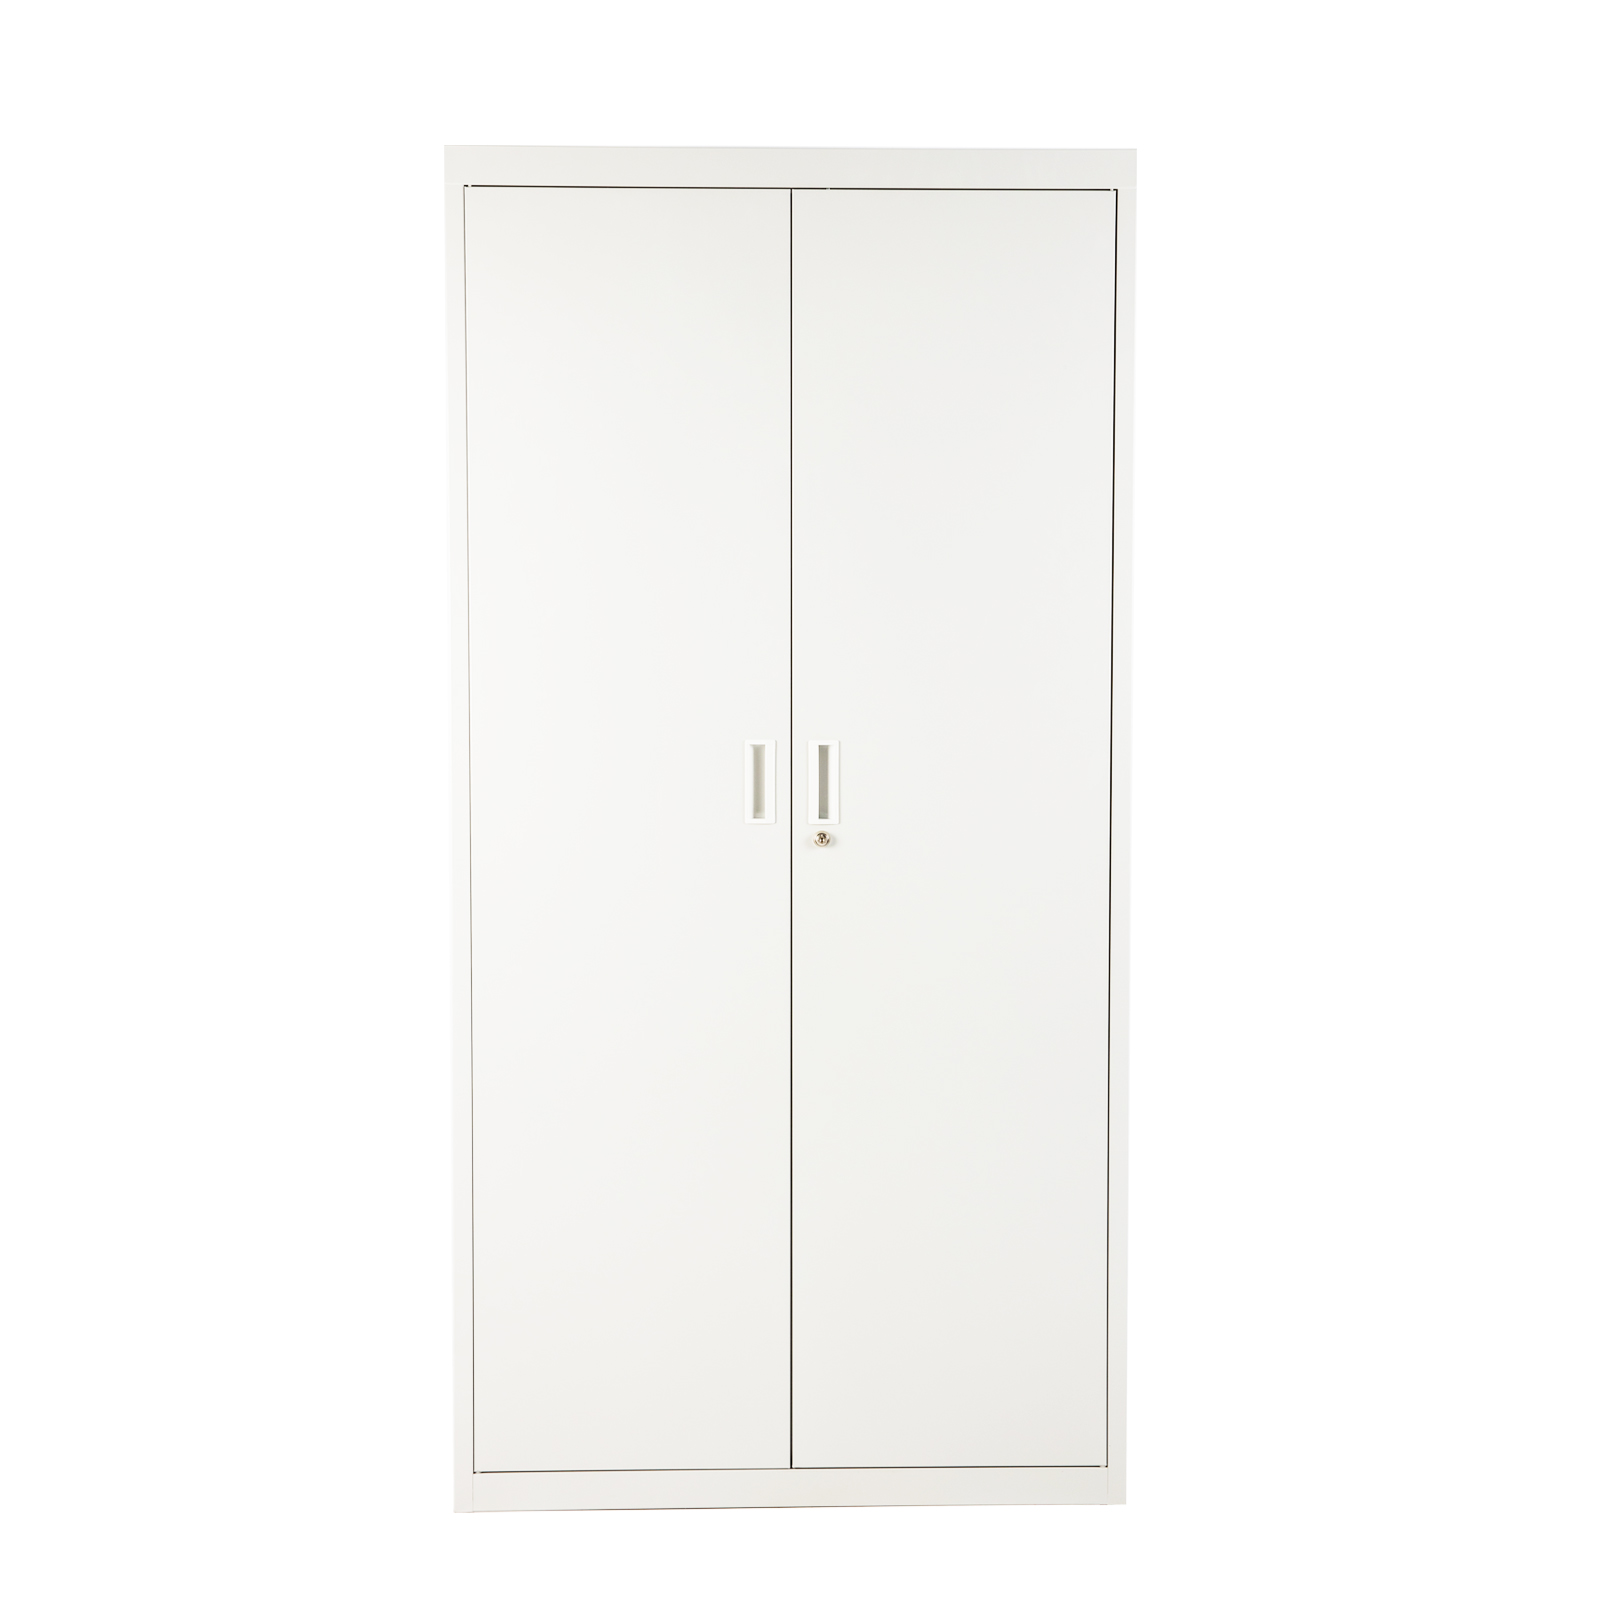 ILARIO SWING DOOR BY MESA